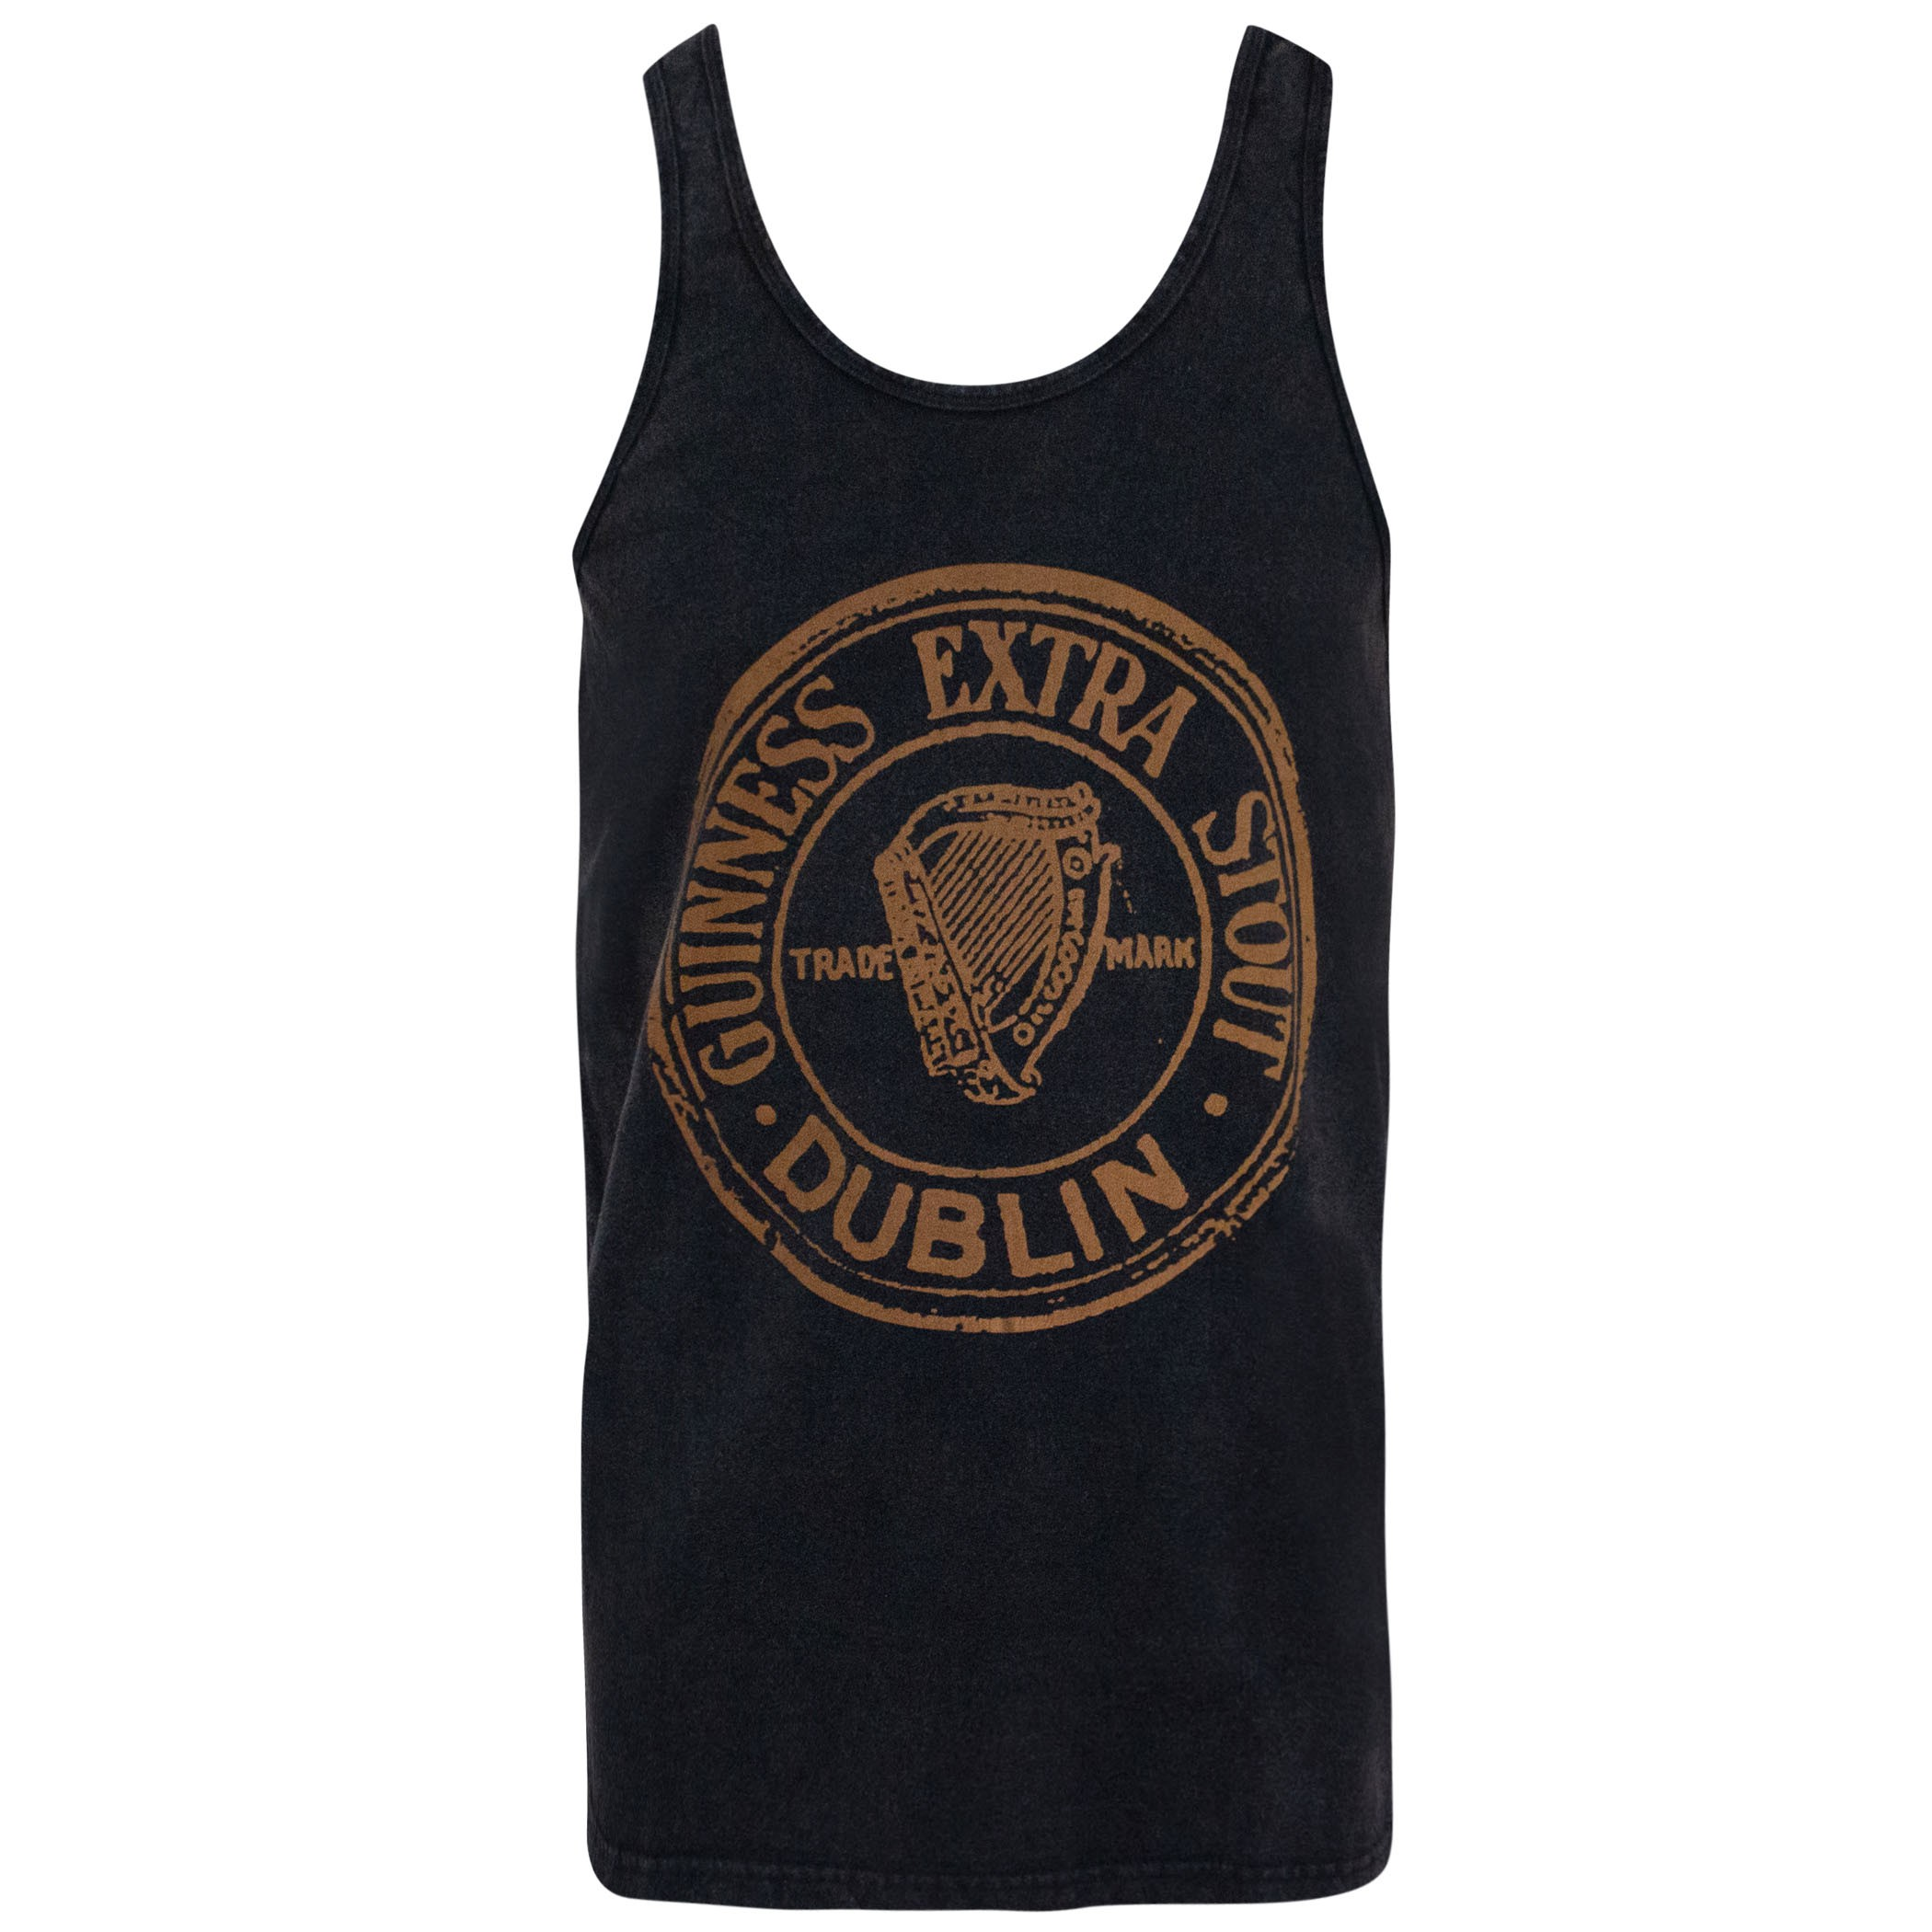 Guinness Extra Stout Washed Black Tank Top